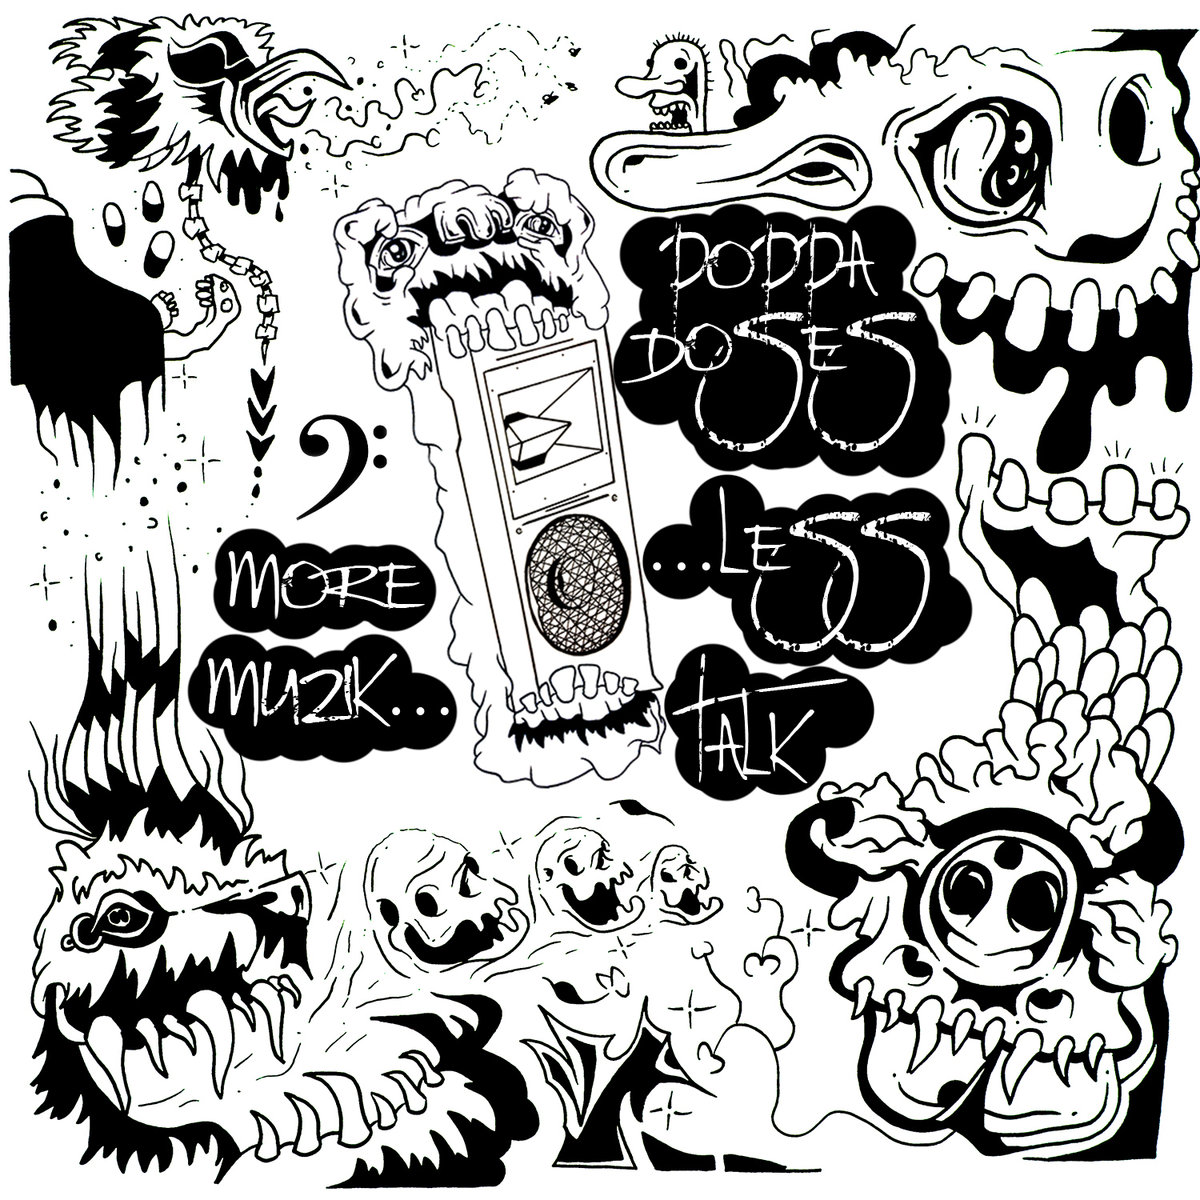 Poppa Doses - Drugz Freakz @ 'More Muzik Less Talk' album (electronic, dubstep)